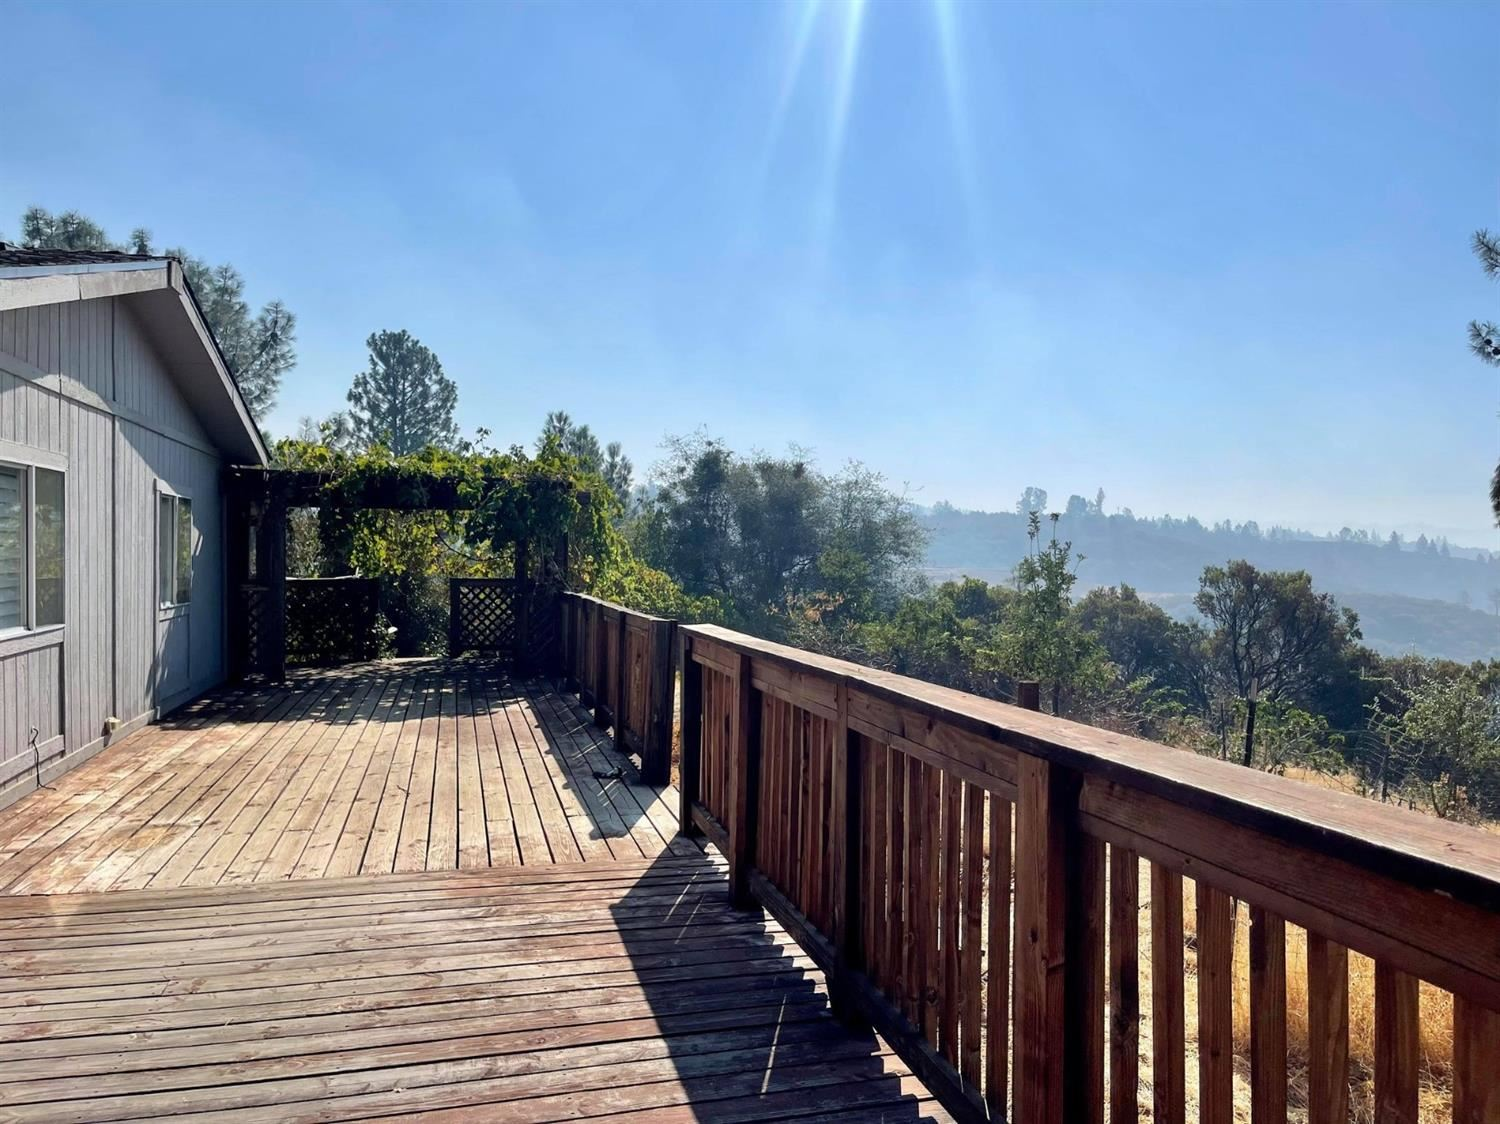 6500 KELSEY CANYON Road, Placerville, CA 95667 - MLS#: 221117641